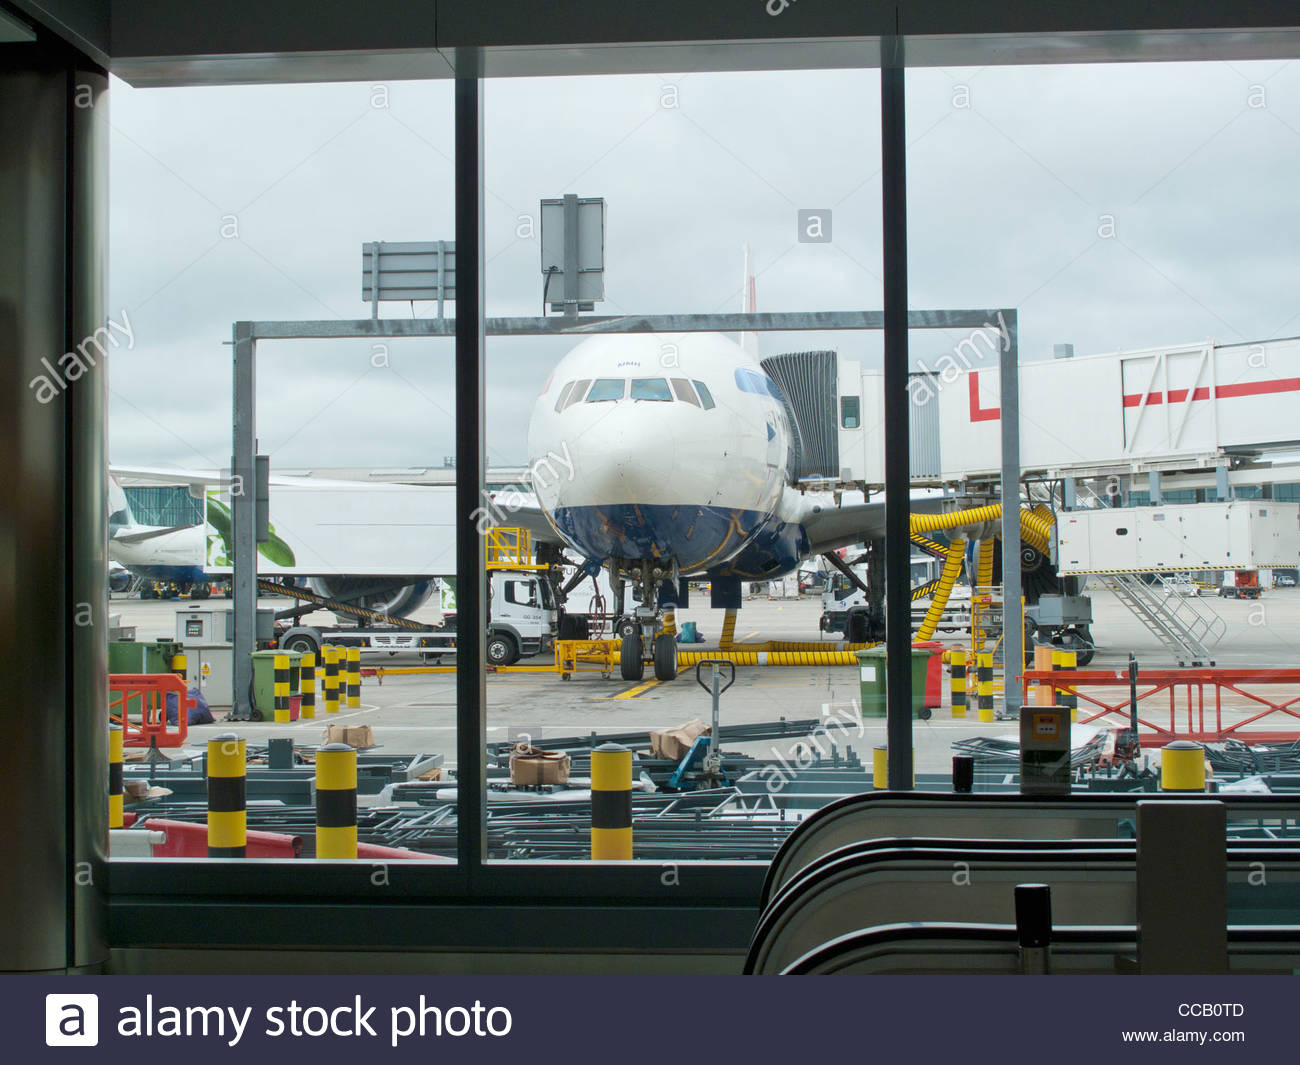 Airplane parked at airport jetway - Stock Image